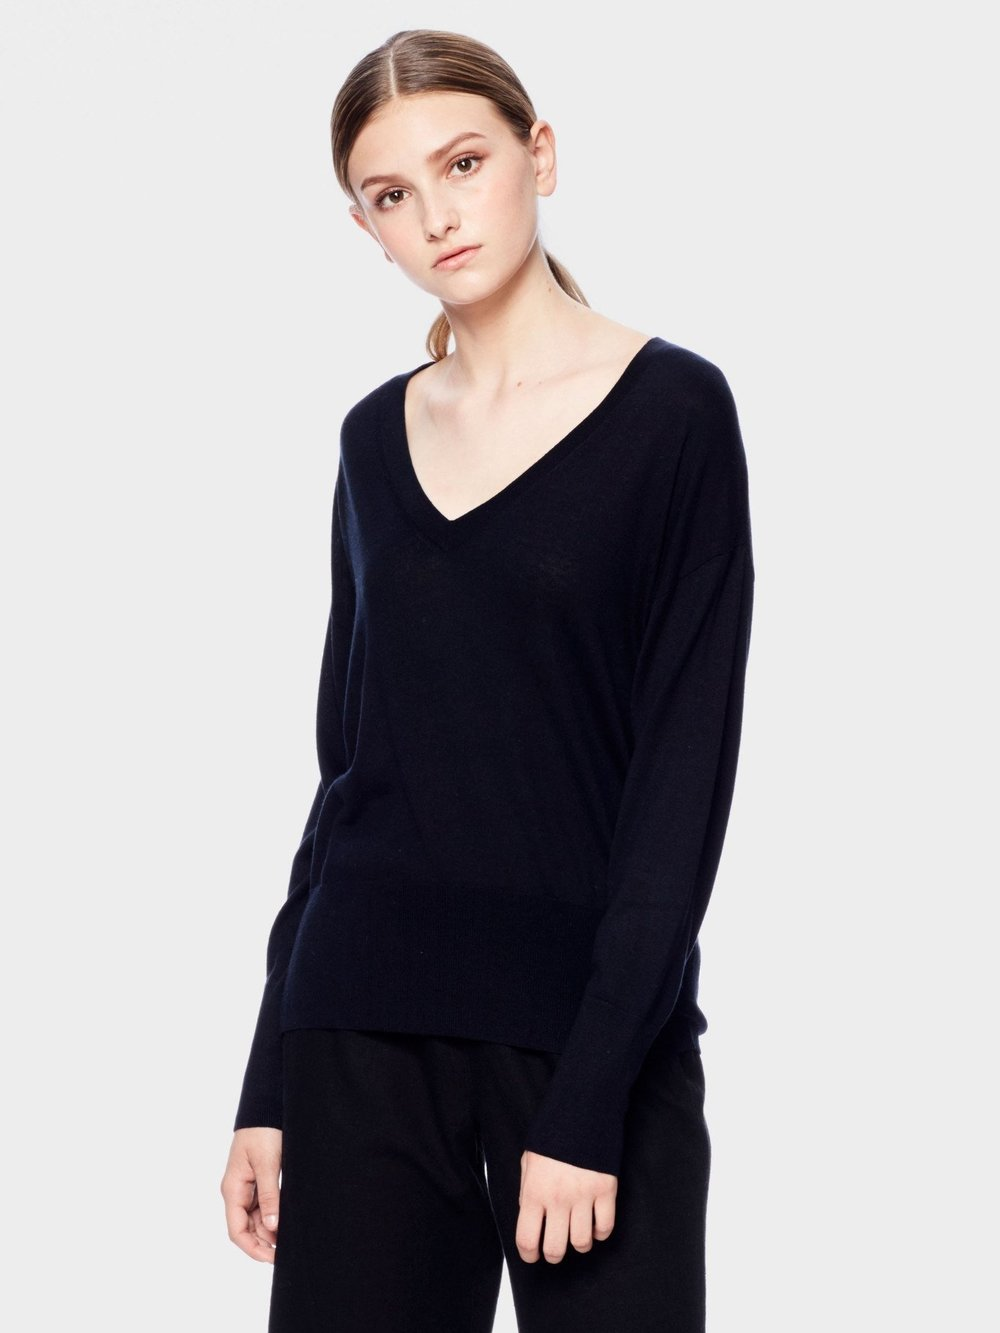 CASHMERE SWEATER | $105 - A luxury blend of Cashmere and Silk defines SiiZU's Inanna sweater as a must-have wardrobe basic.  It features Deep V neckline, drop shoulder line, and high-low hem. Sustainably made and ethically manufactured, this sweater is sure to please!